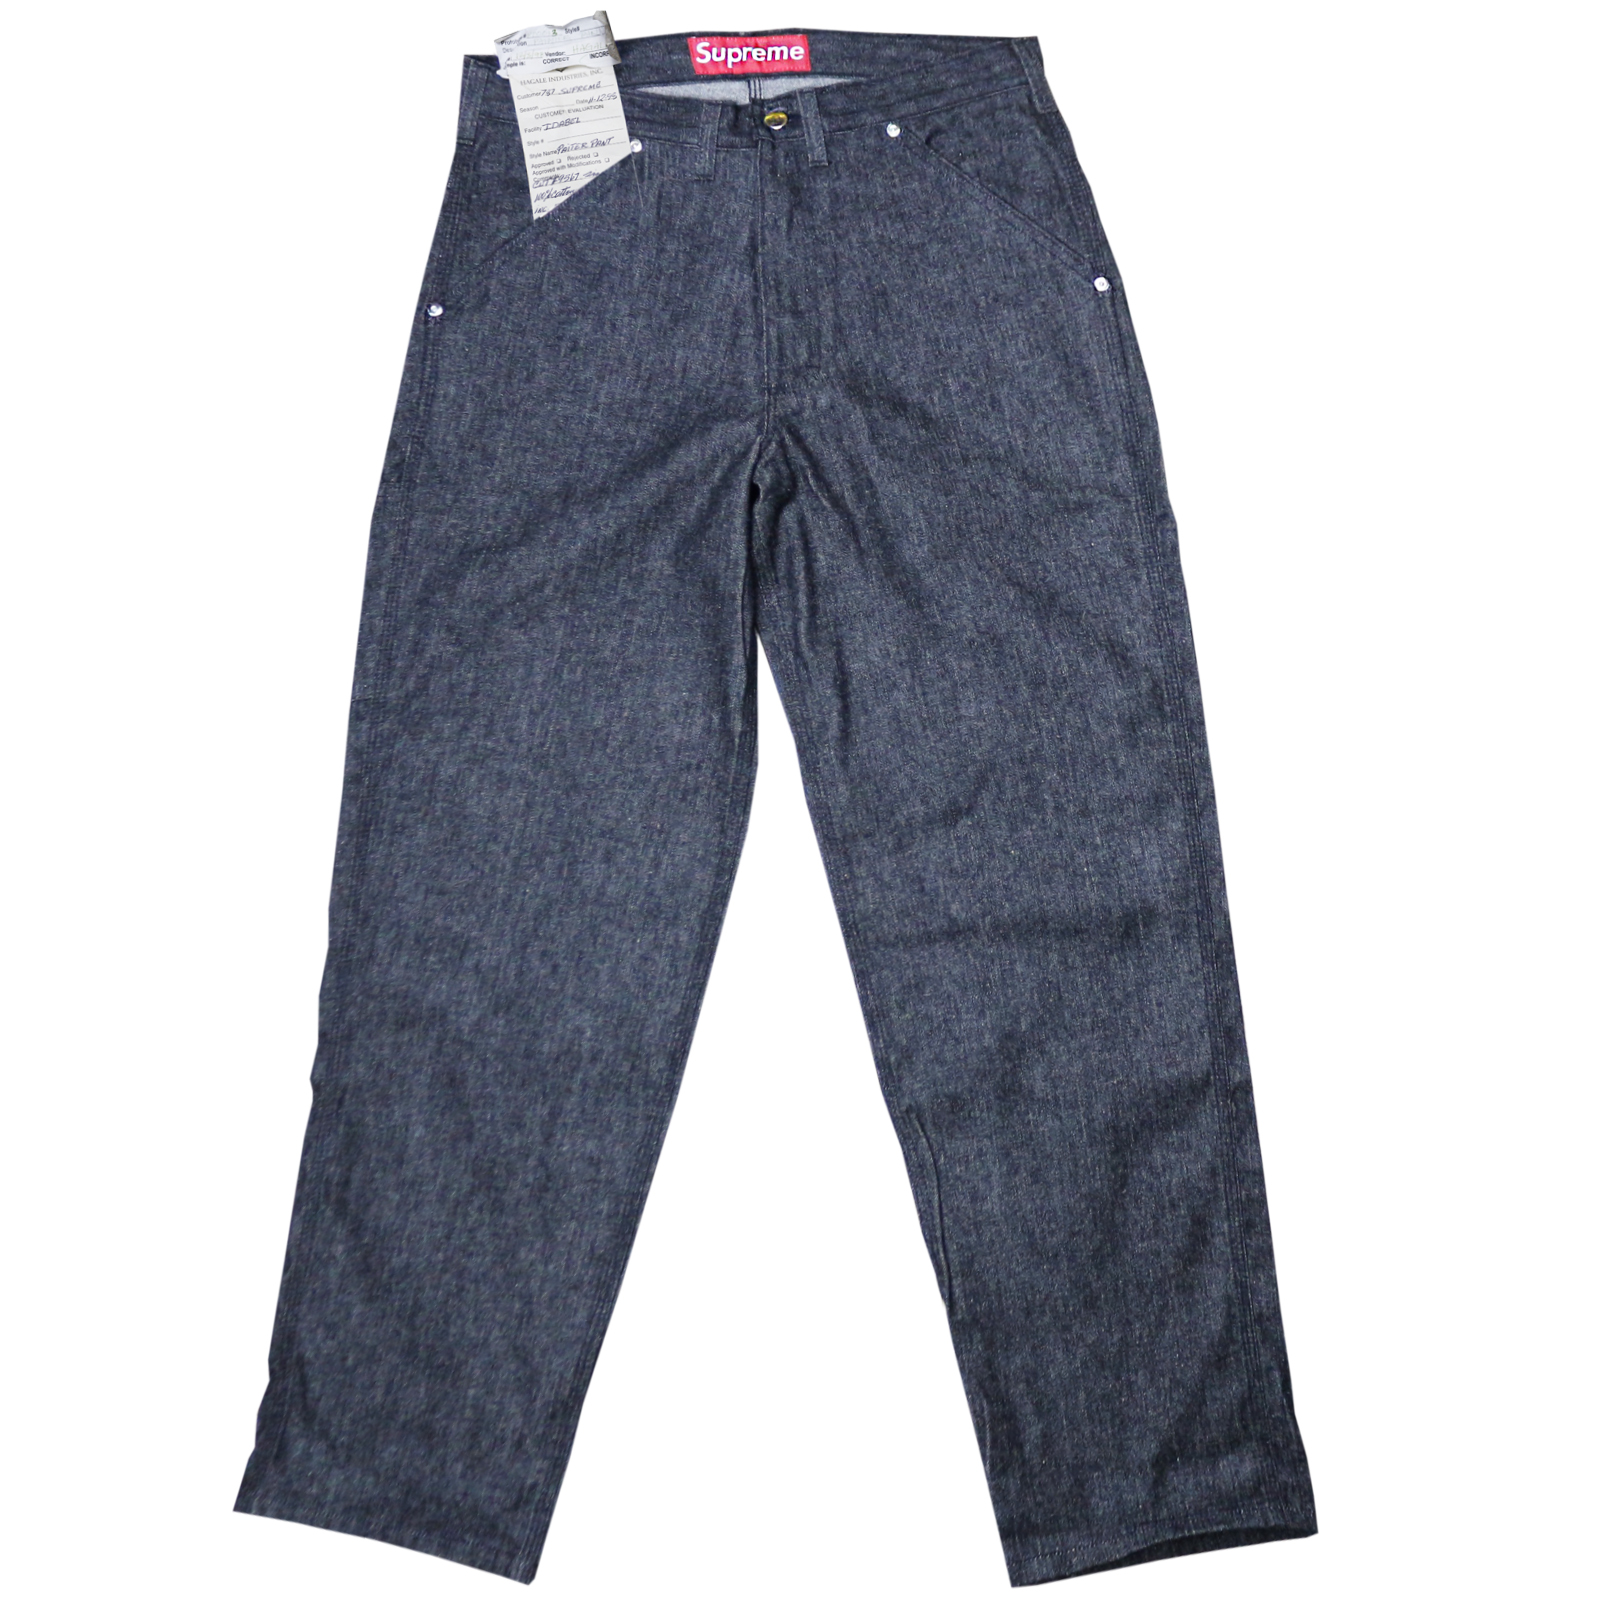 21.SUPREME_DENIM_FRONT